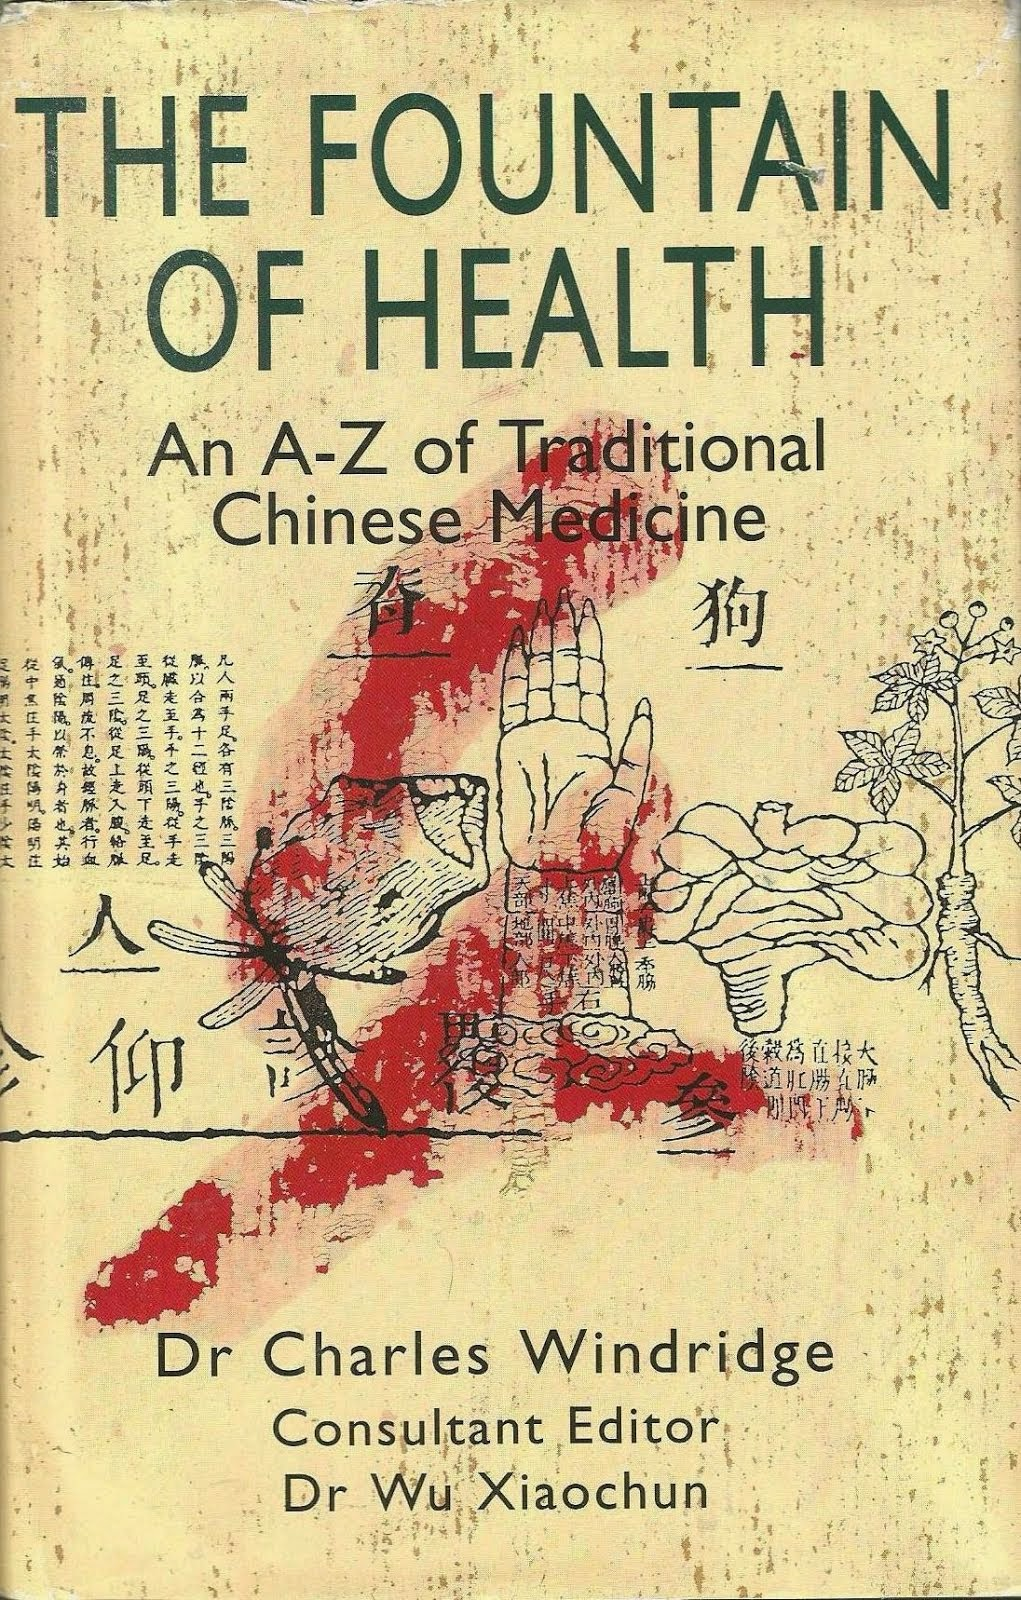 THE FOUNTAIN OF HEALTH : AN A-Z OF TRADITIONAL CHINESE MEDICINE BY DR CHARLES WINDRIDGE AND DR WU X